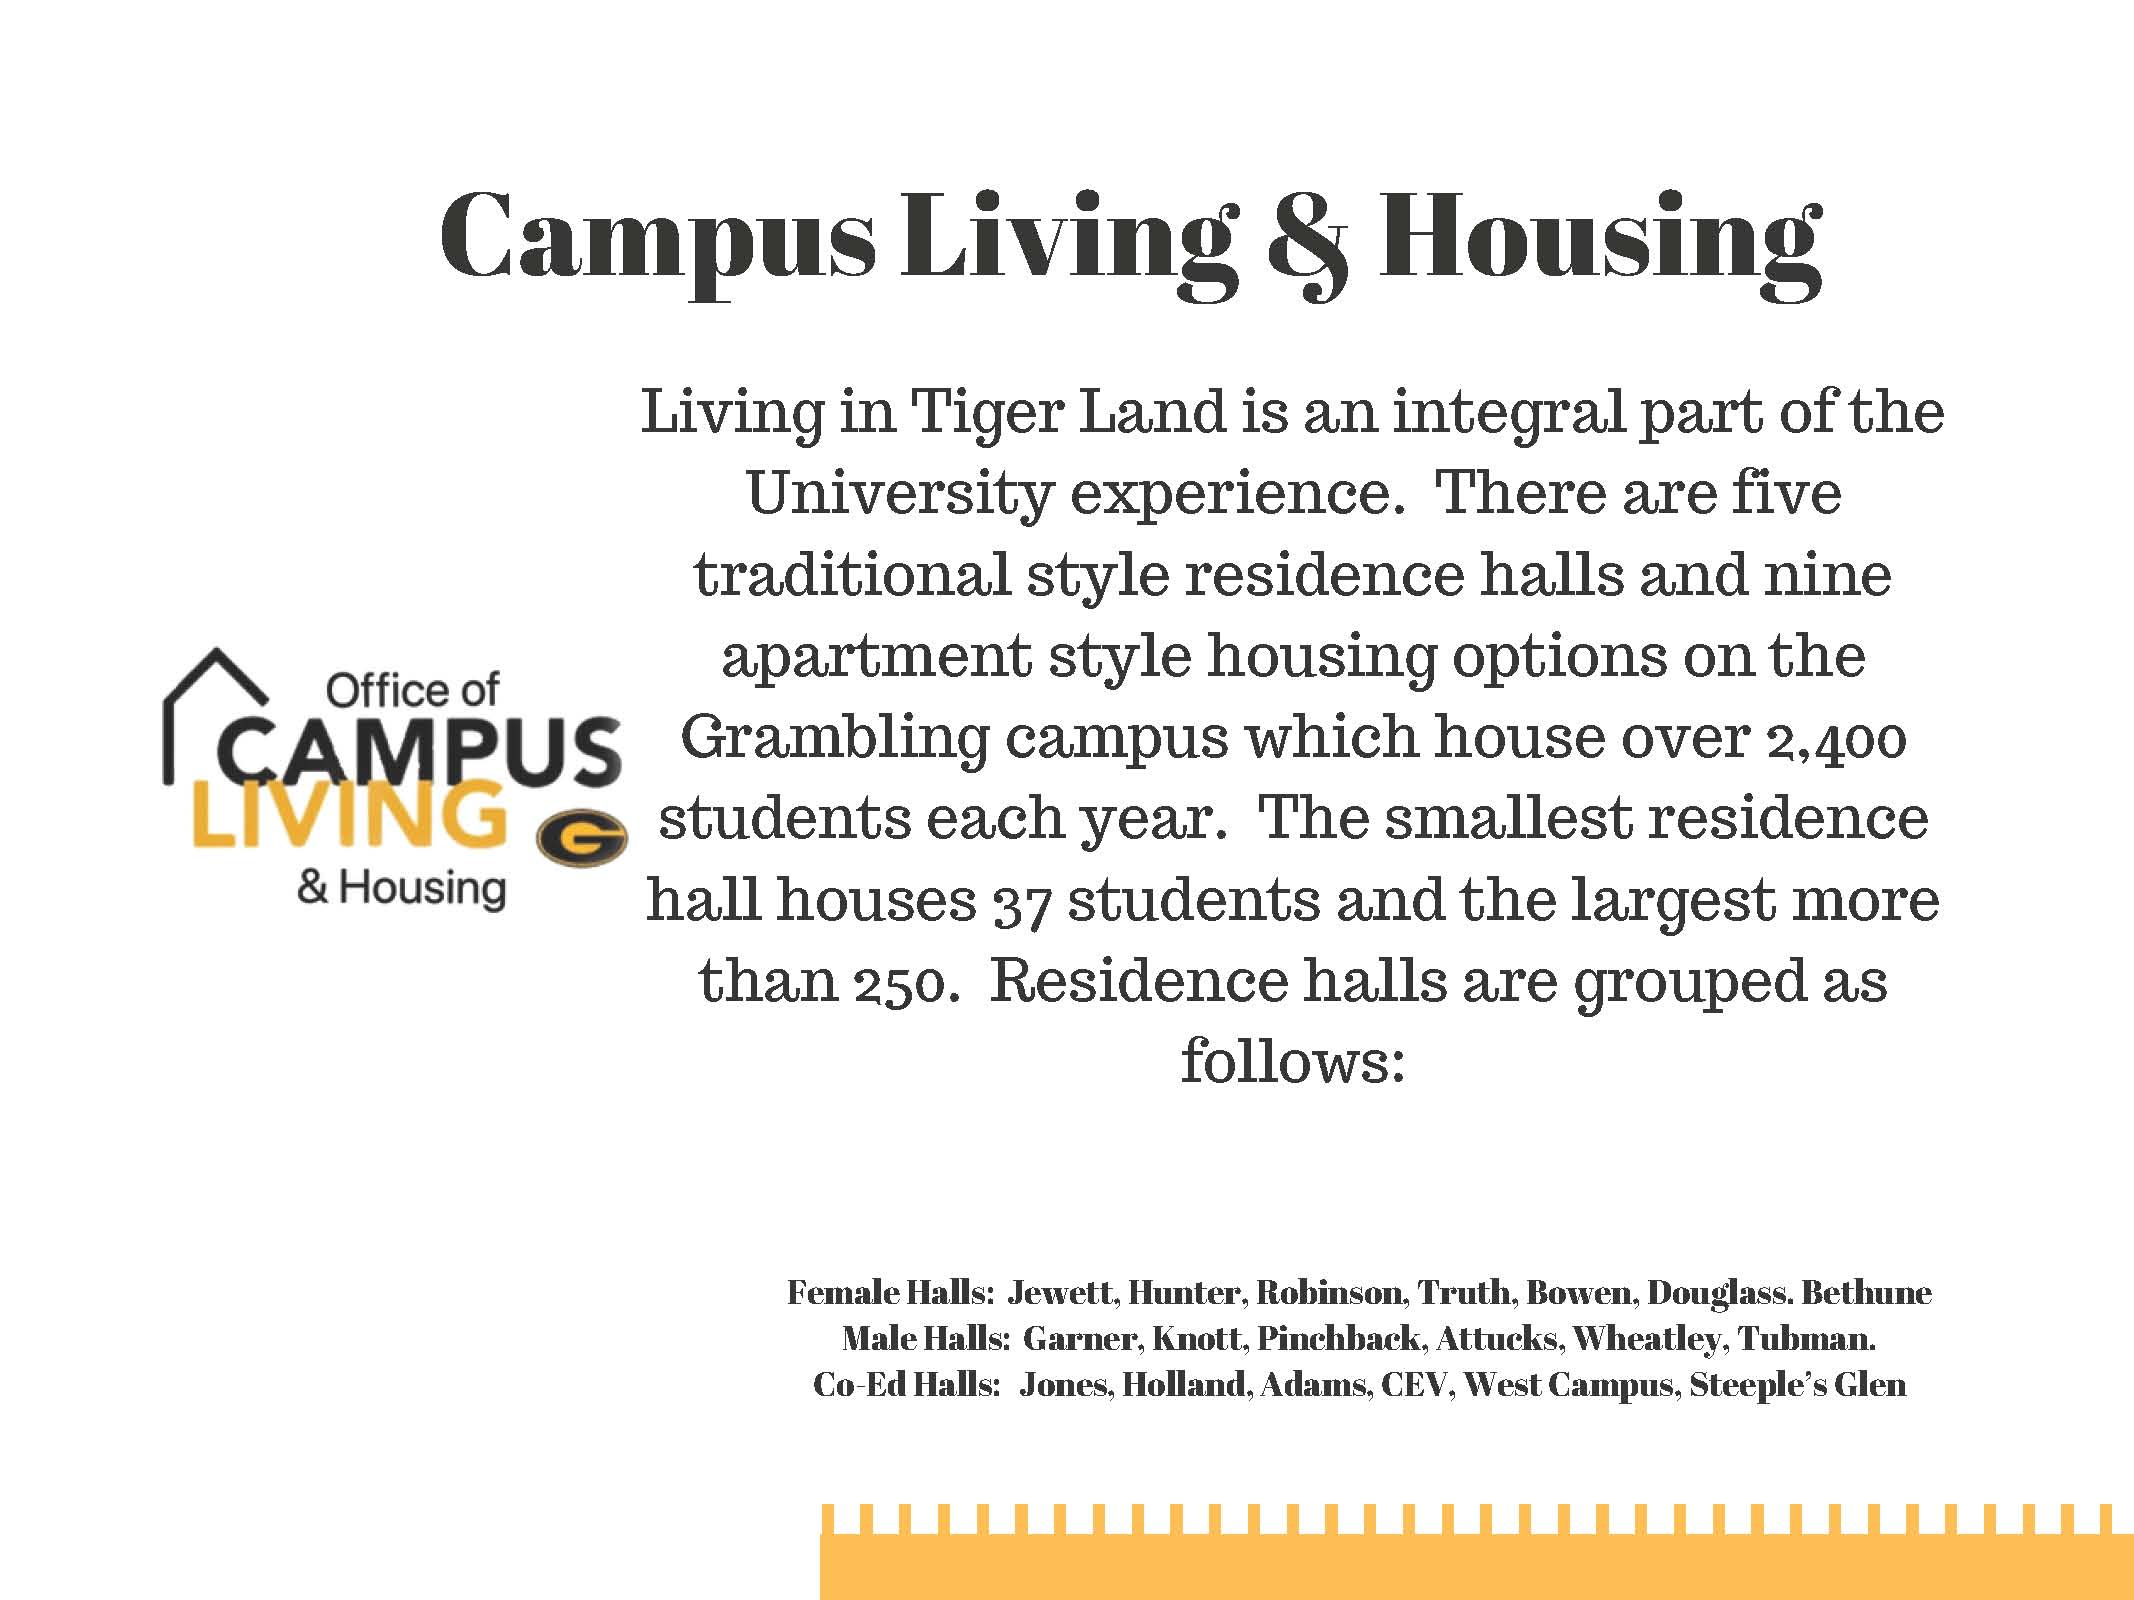 About Campus Living & Housing